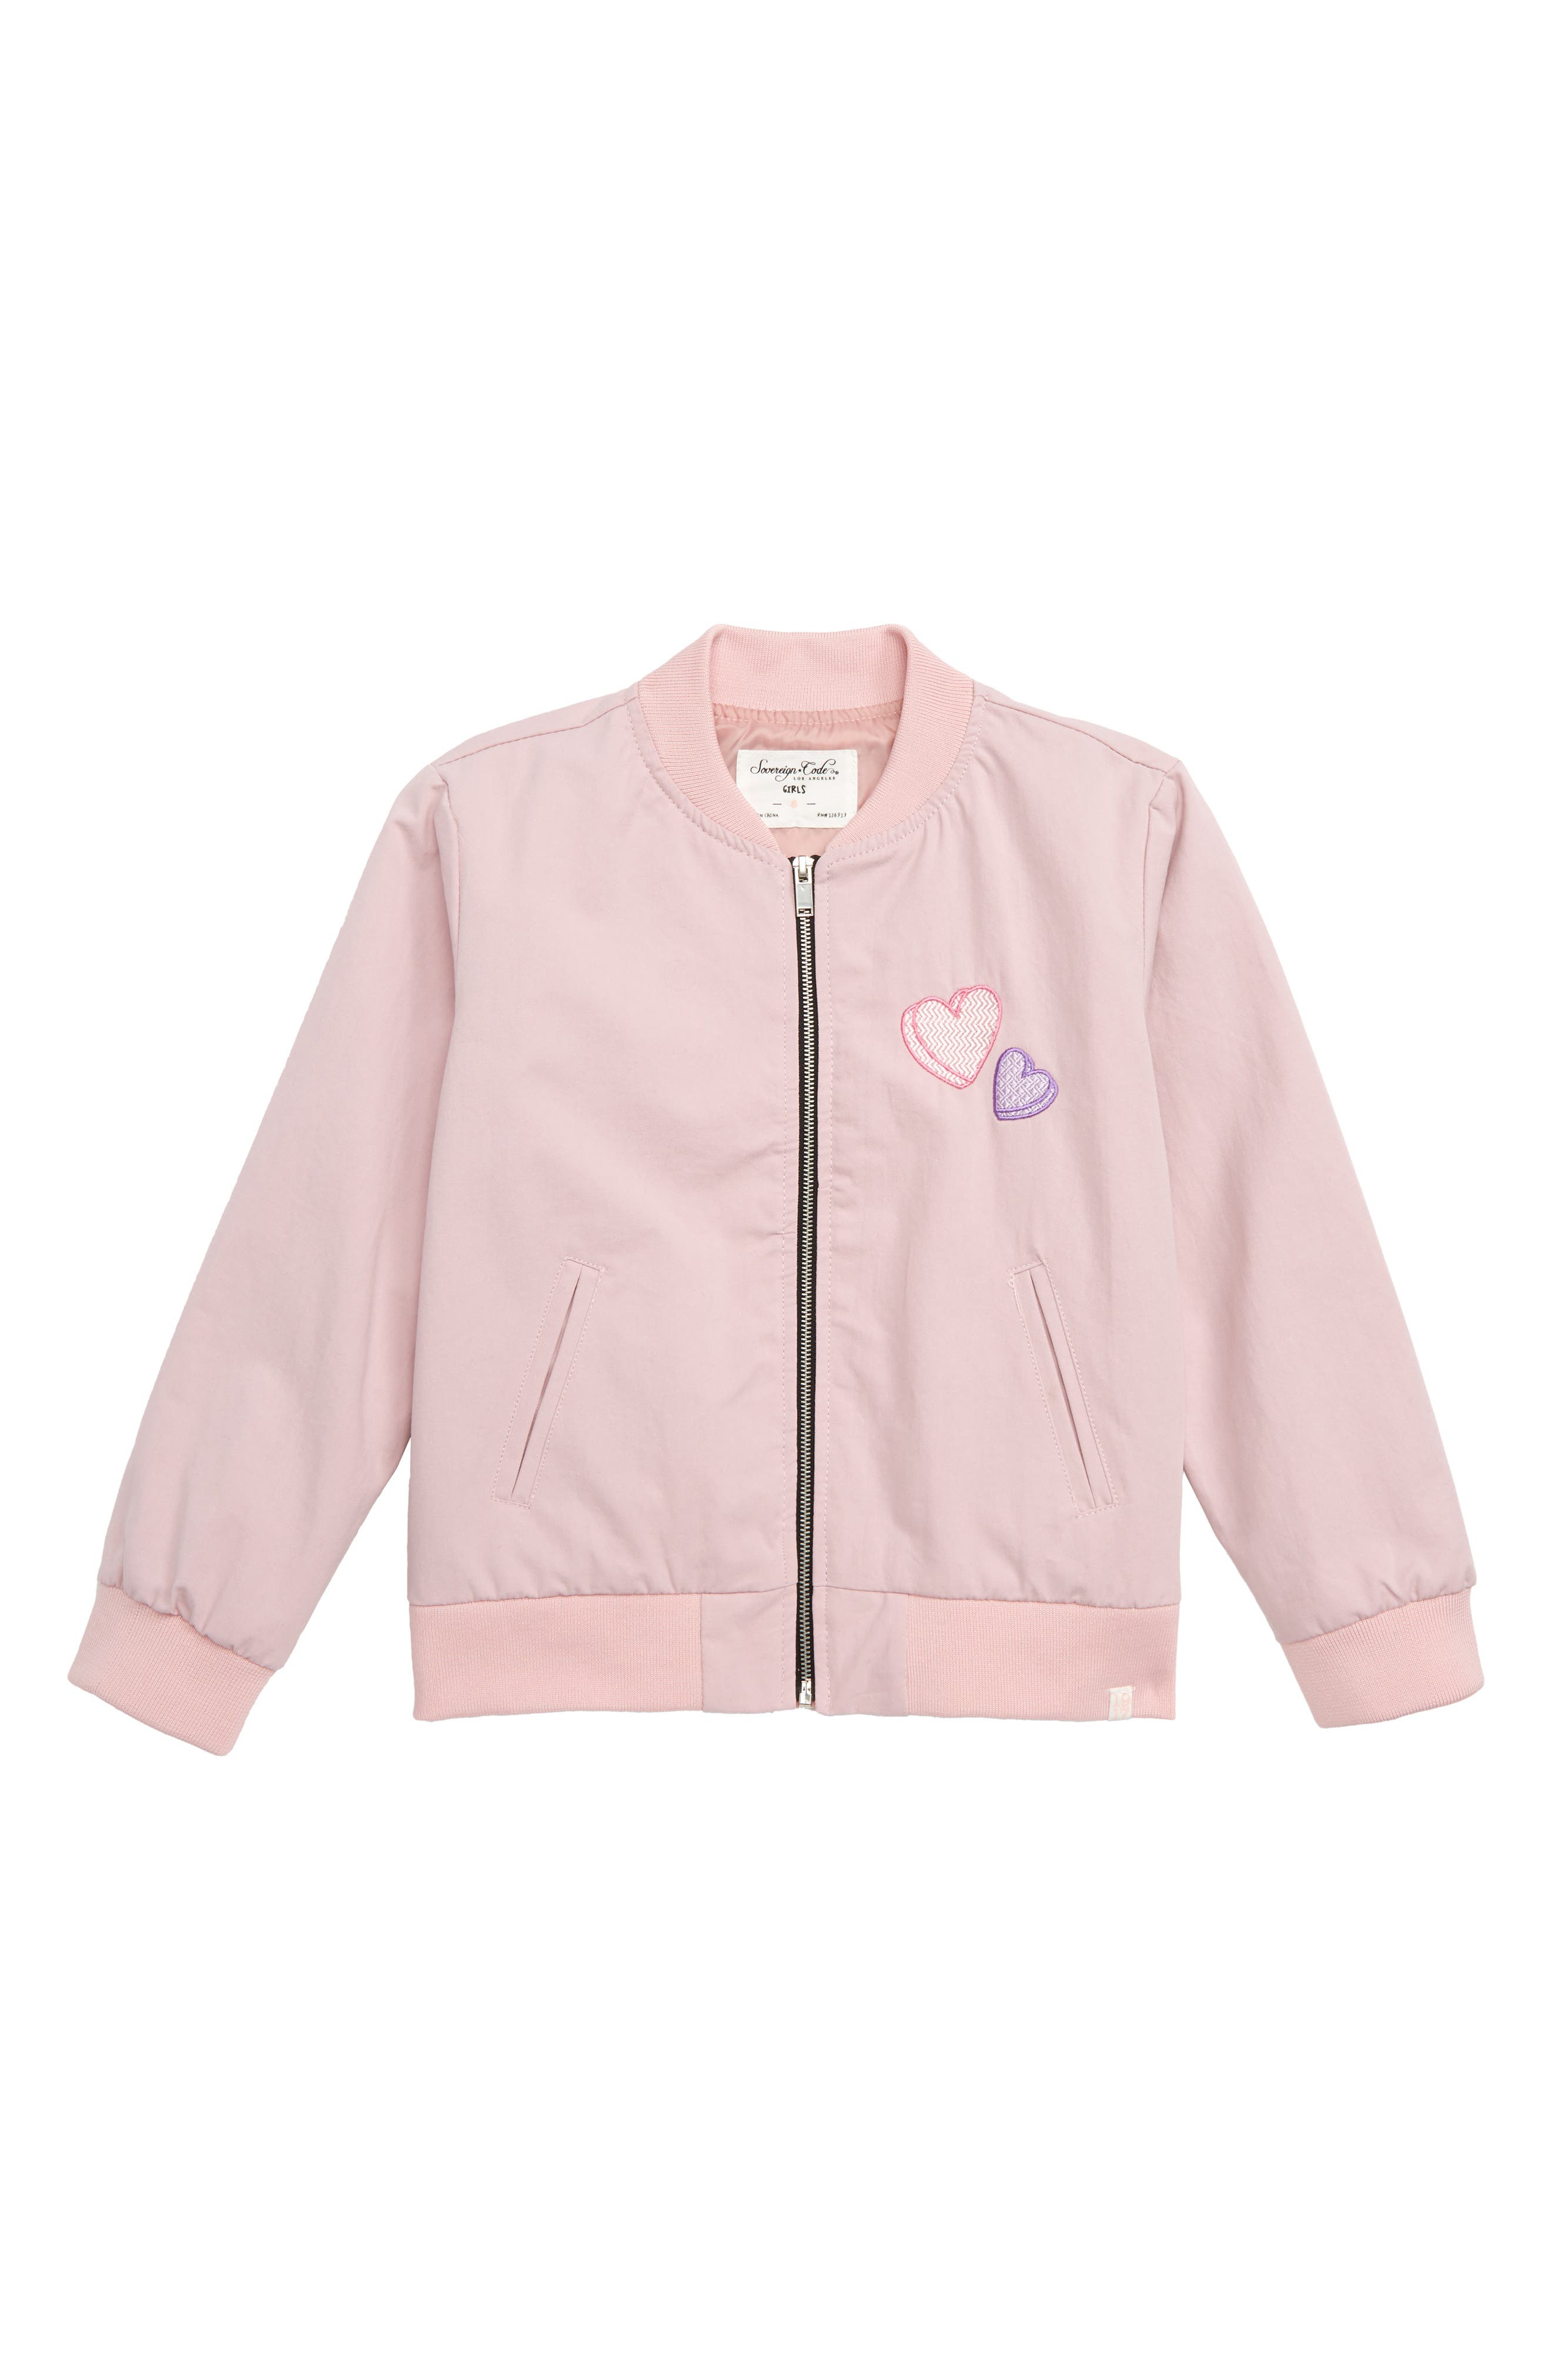 Elise Heart Bomber Jacket,                             Main thumbnail 1, color,                             PINK